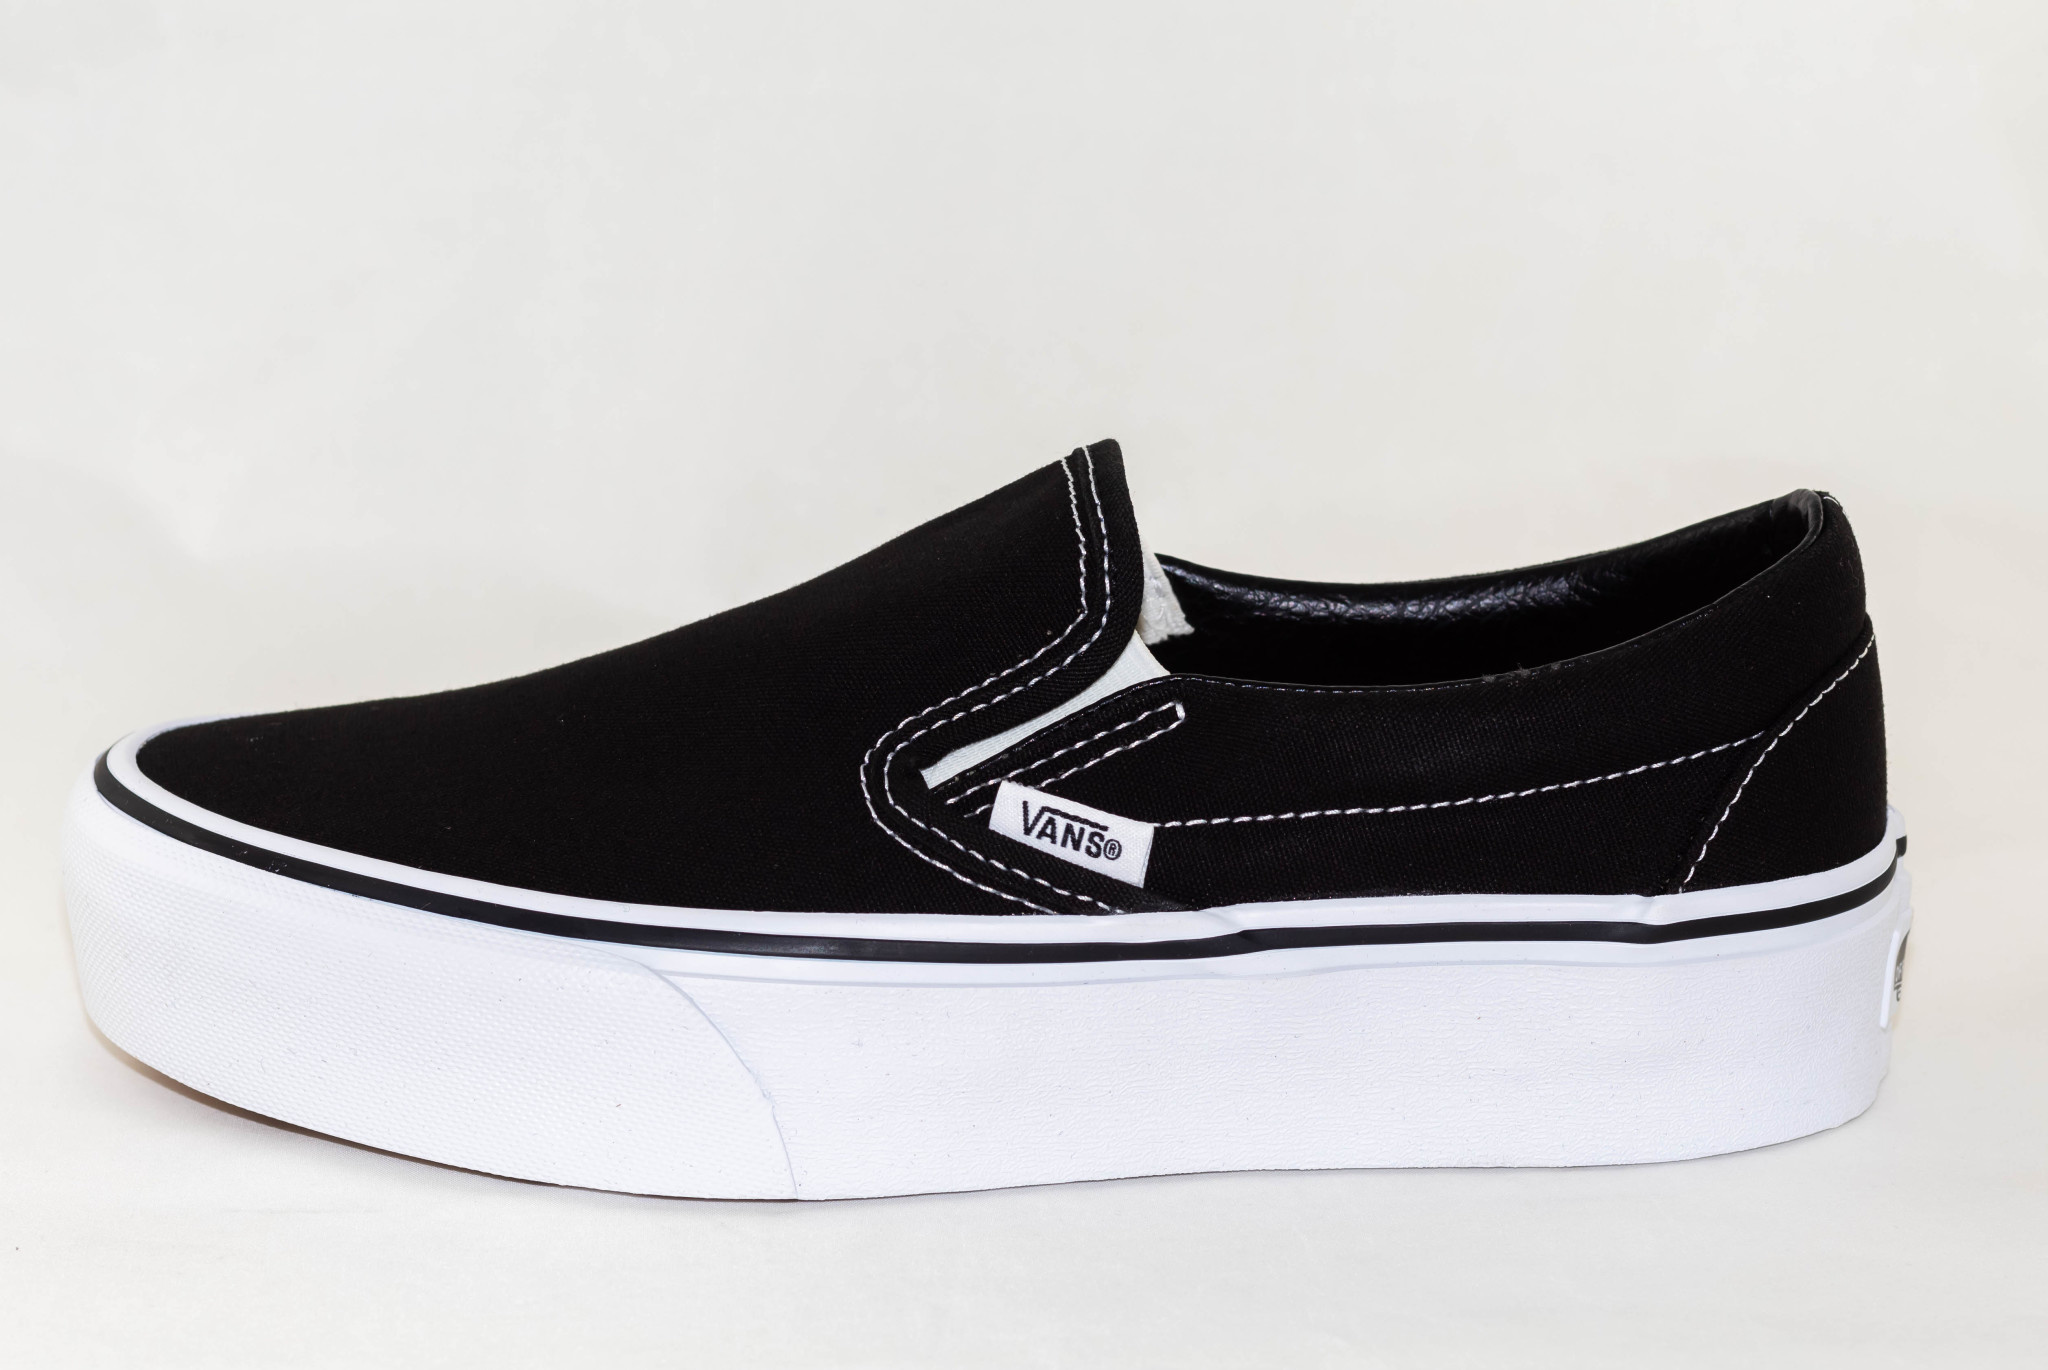 VANS SLIP-ON PLATFORM Black/White